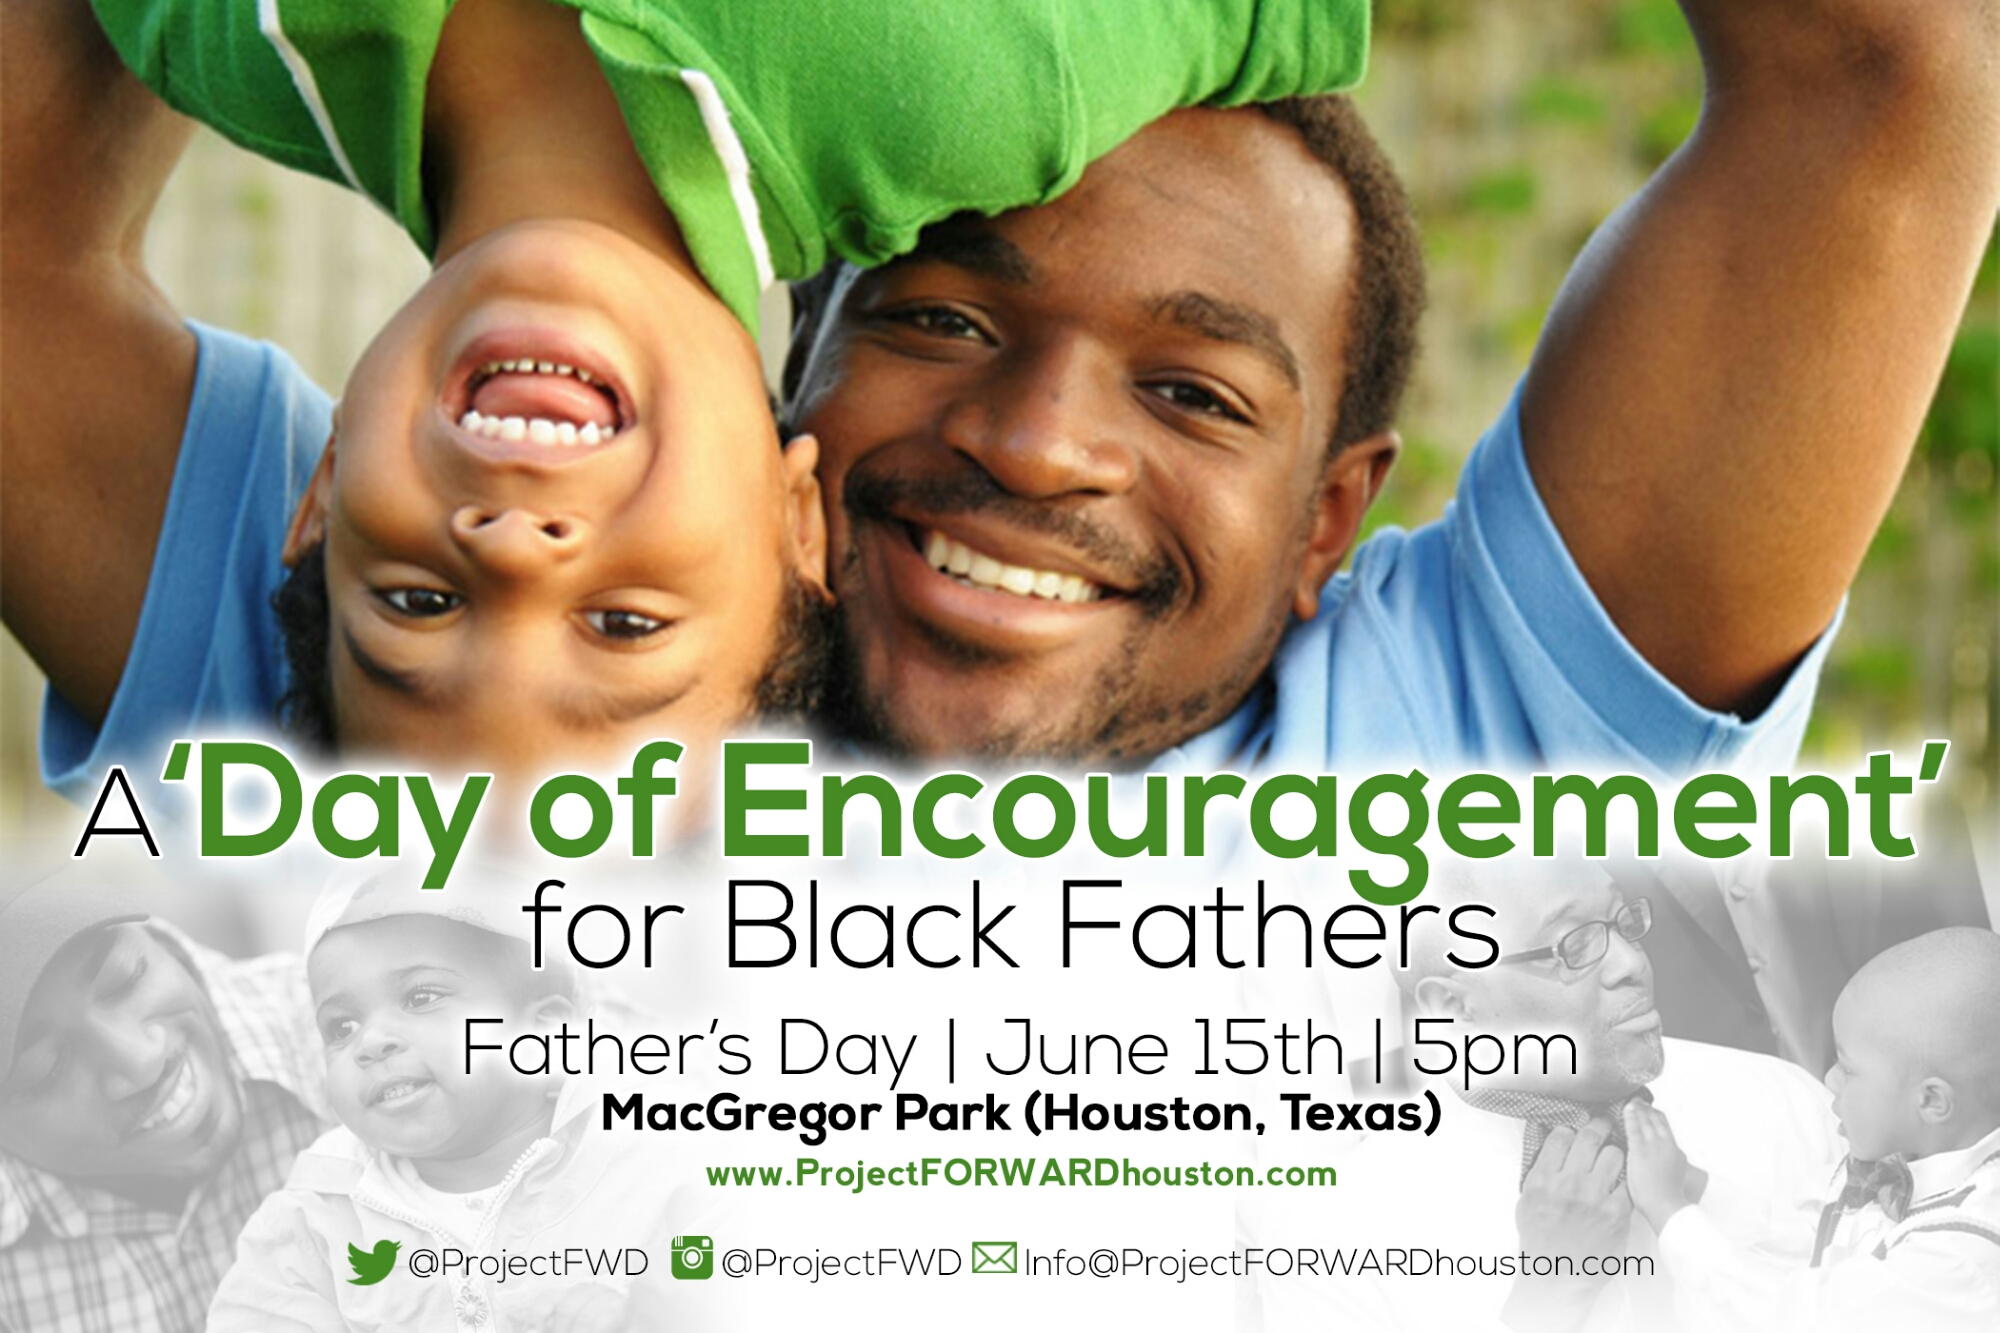 A 'Day of Encouragement for Black Fathers' : One-On-One with Deric Muhammad of Project FWD